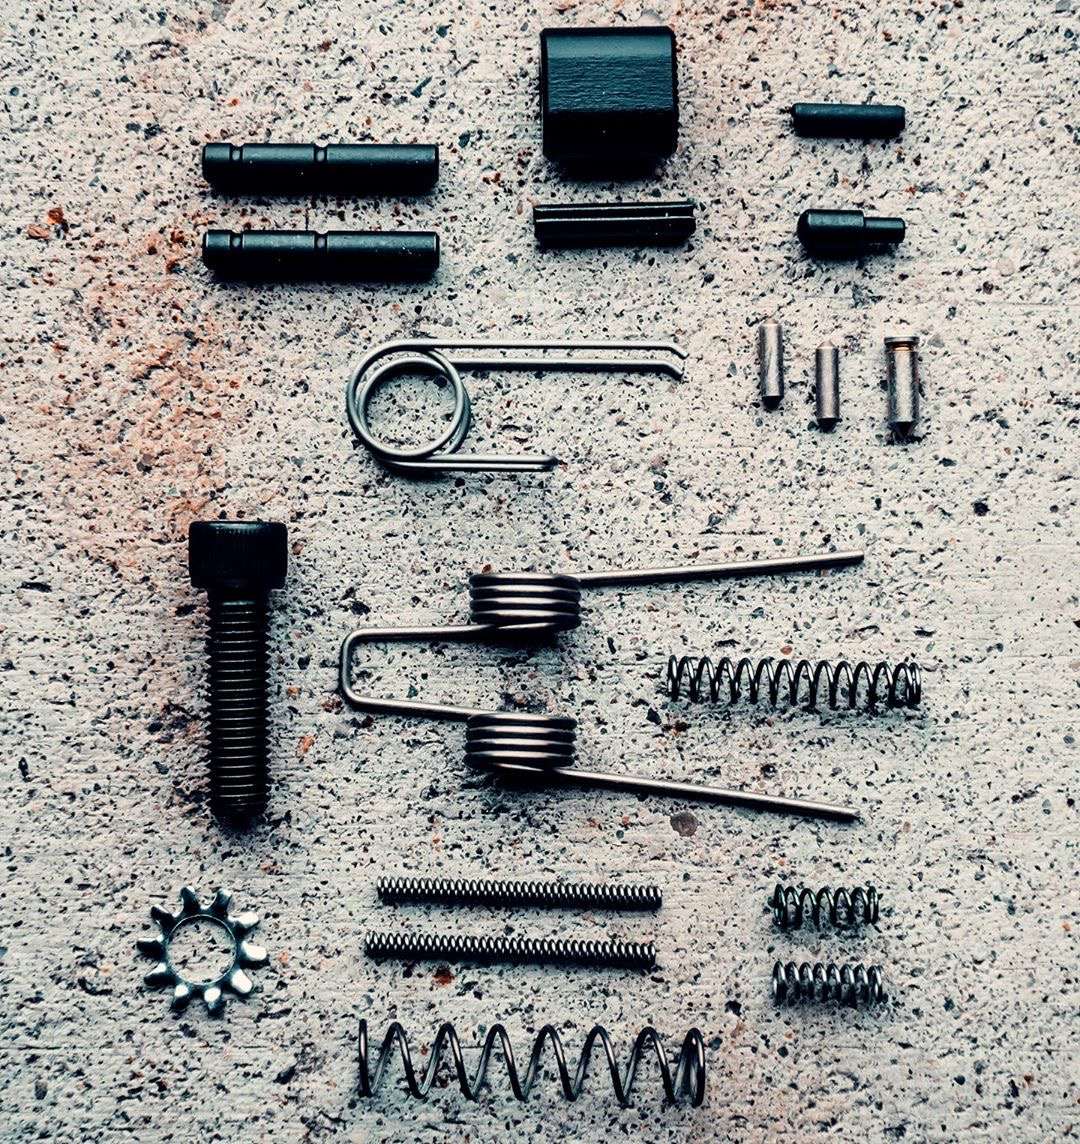 White Label Armory rifle parts